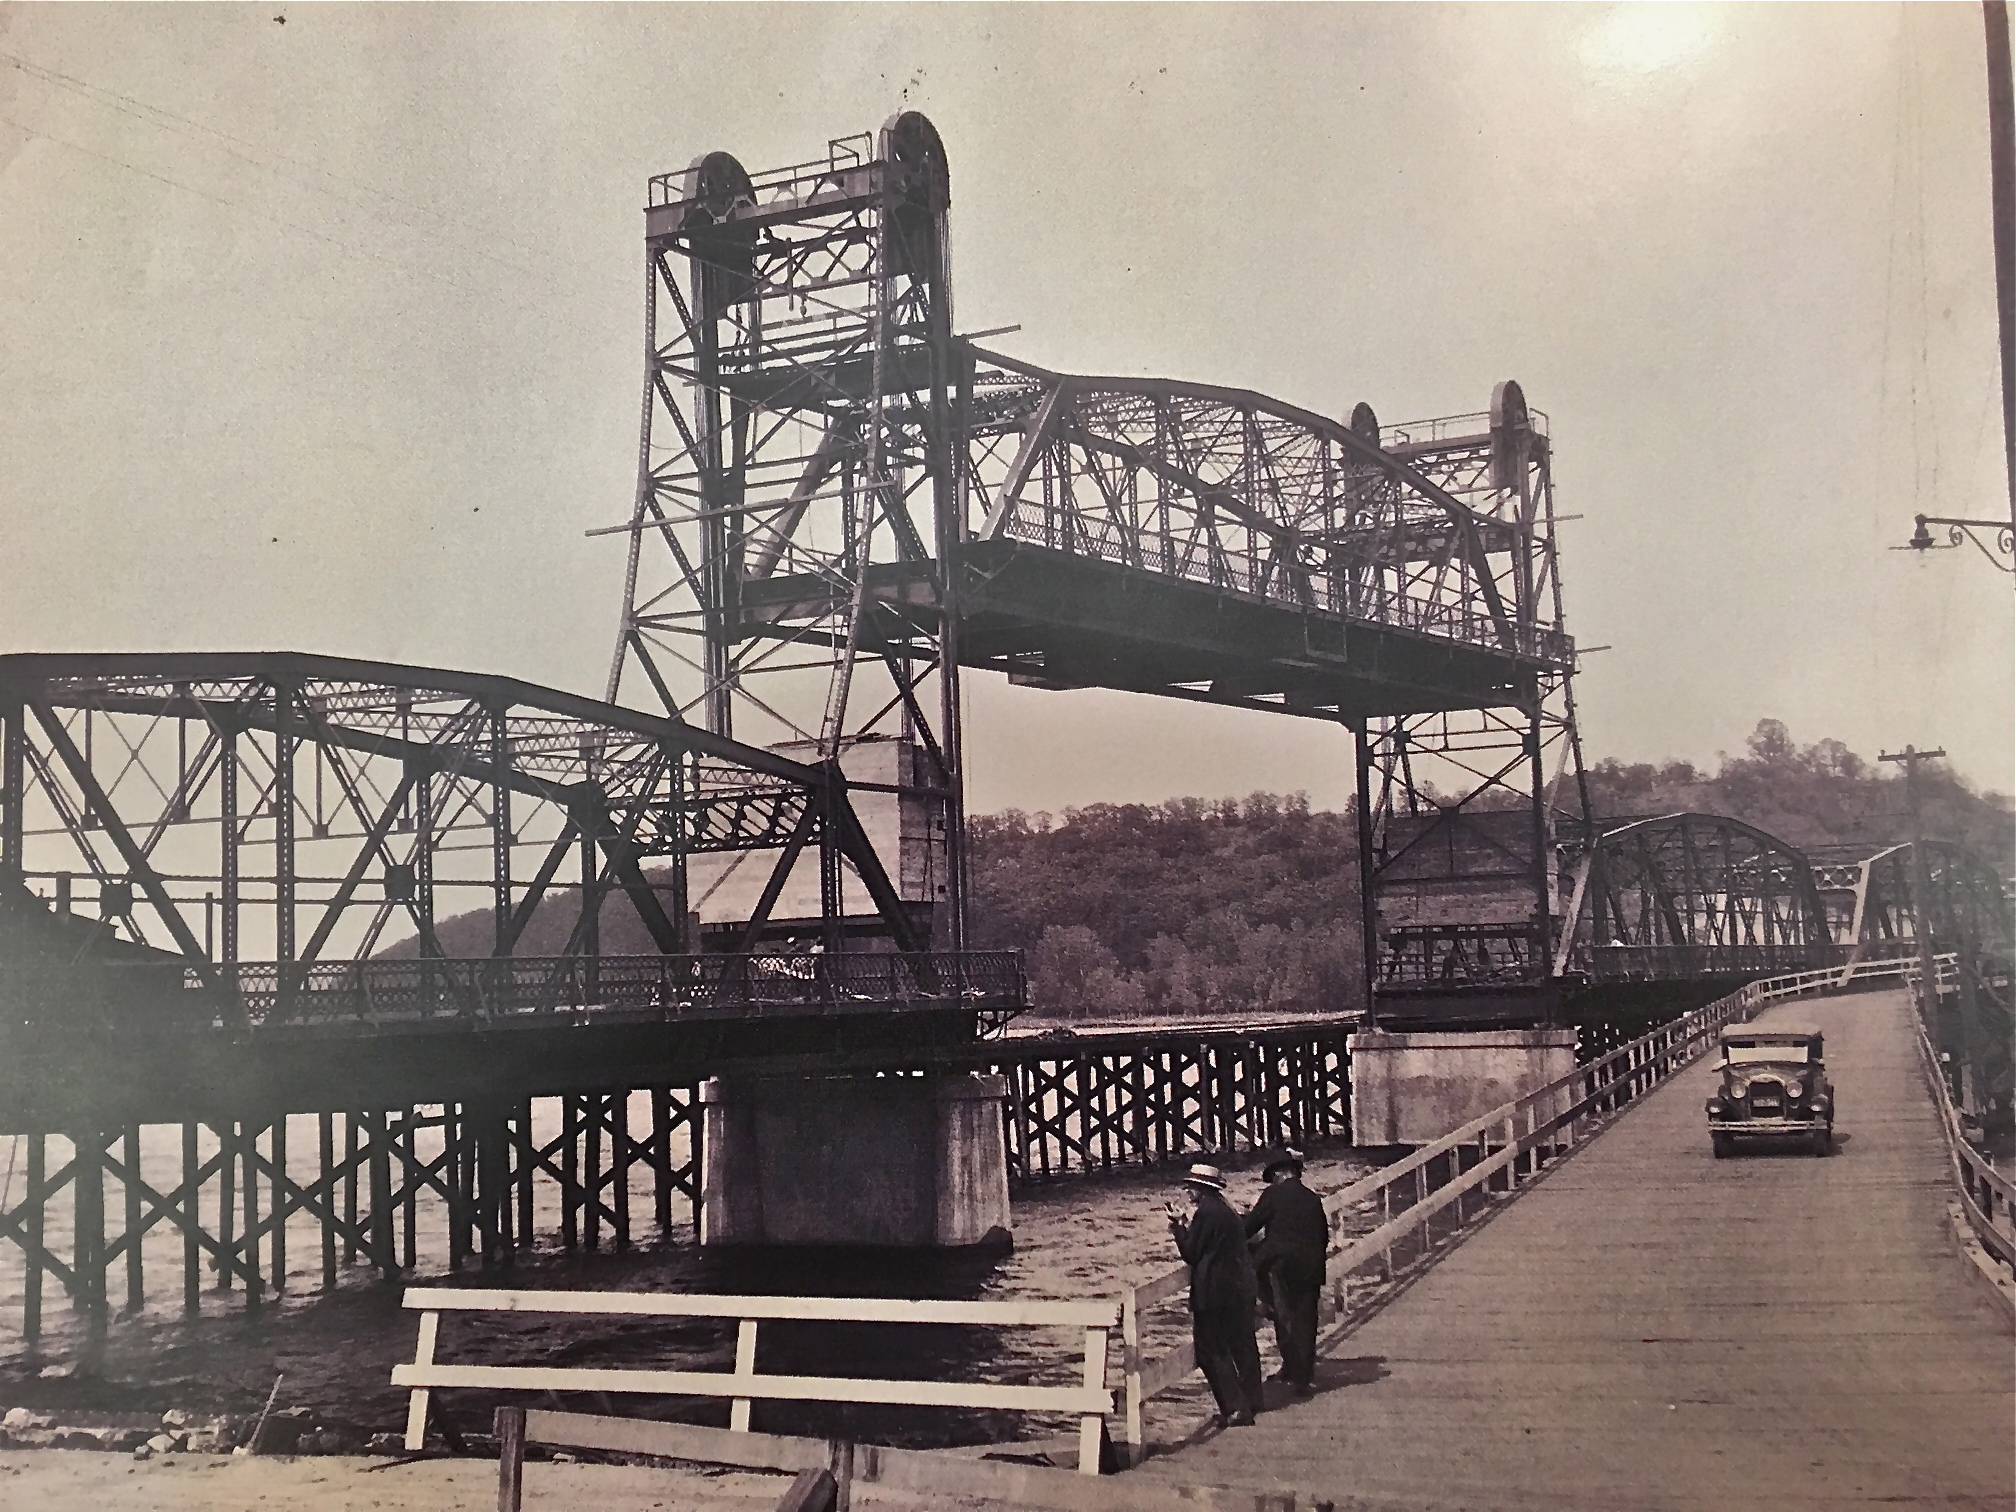 """Lift Bridge Under Construction While Pontoon Bridge Was In Use. The Year was 1931. Photo credit, Mr. John Runk, courtesy of the Stillwater Public Library.    To travel through the """"Time Tunnel"""" from 1875 to 1931, Click or Tap the photo above . Imagine yourself walking across the old wooden bridge onto the new lift bridge from 1875 to 1931 !"""